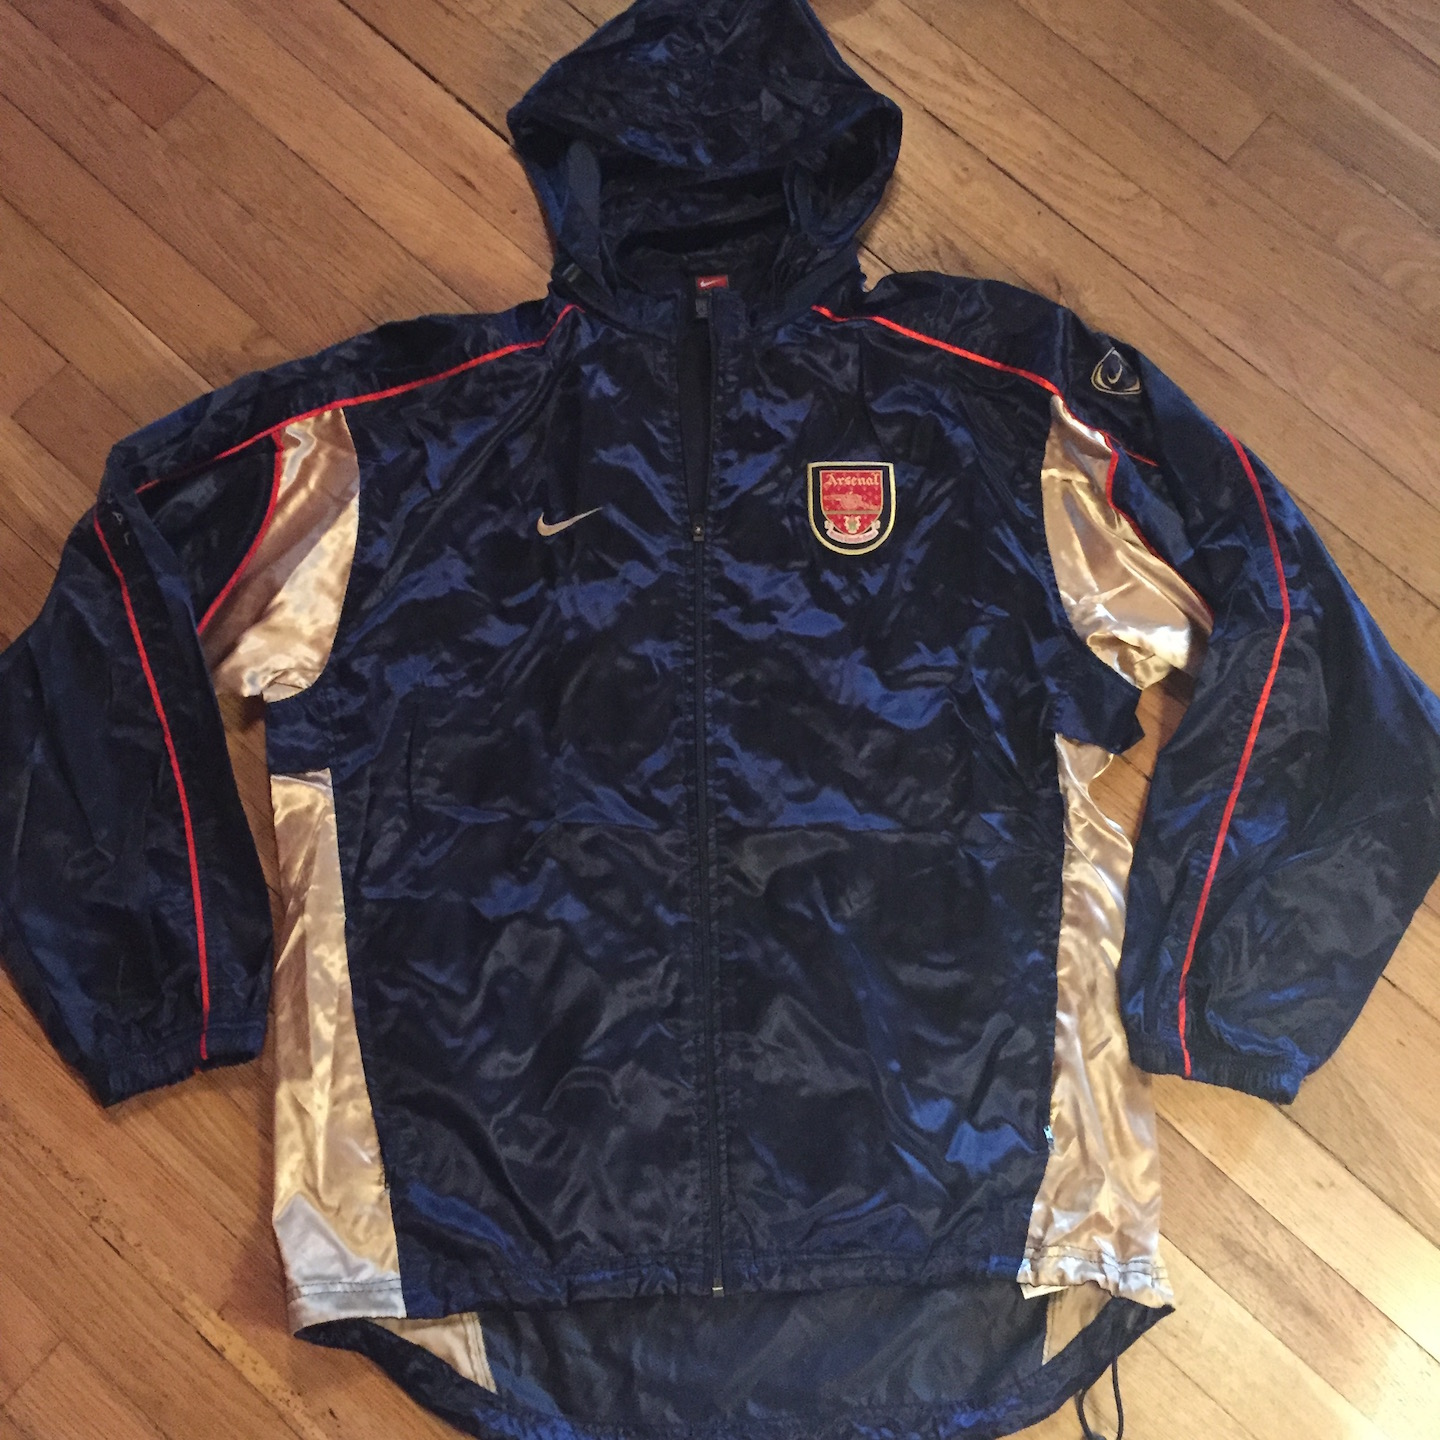 863d69aa34 Nike Vintage 90s Nike Arsenal Football Club Hooded Jacket L Size l - Light  Jackets for Sale - Grailed